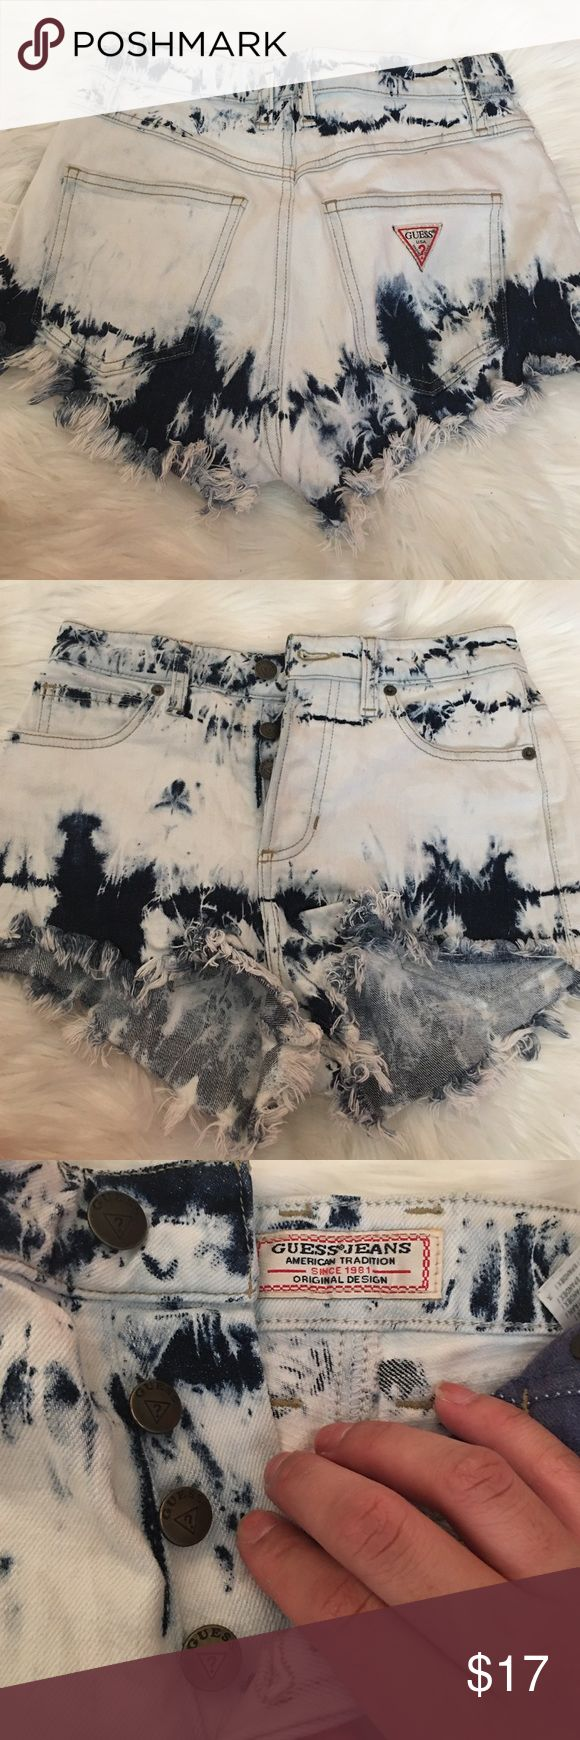 High waist GUESS Shorts These shorts are the staple of what GUESS clothing is. A beautiful wash on this shorts, perfect to grab a t shirt and go. These make you look really good! Guess Shorts Jean Shorts